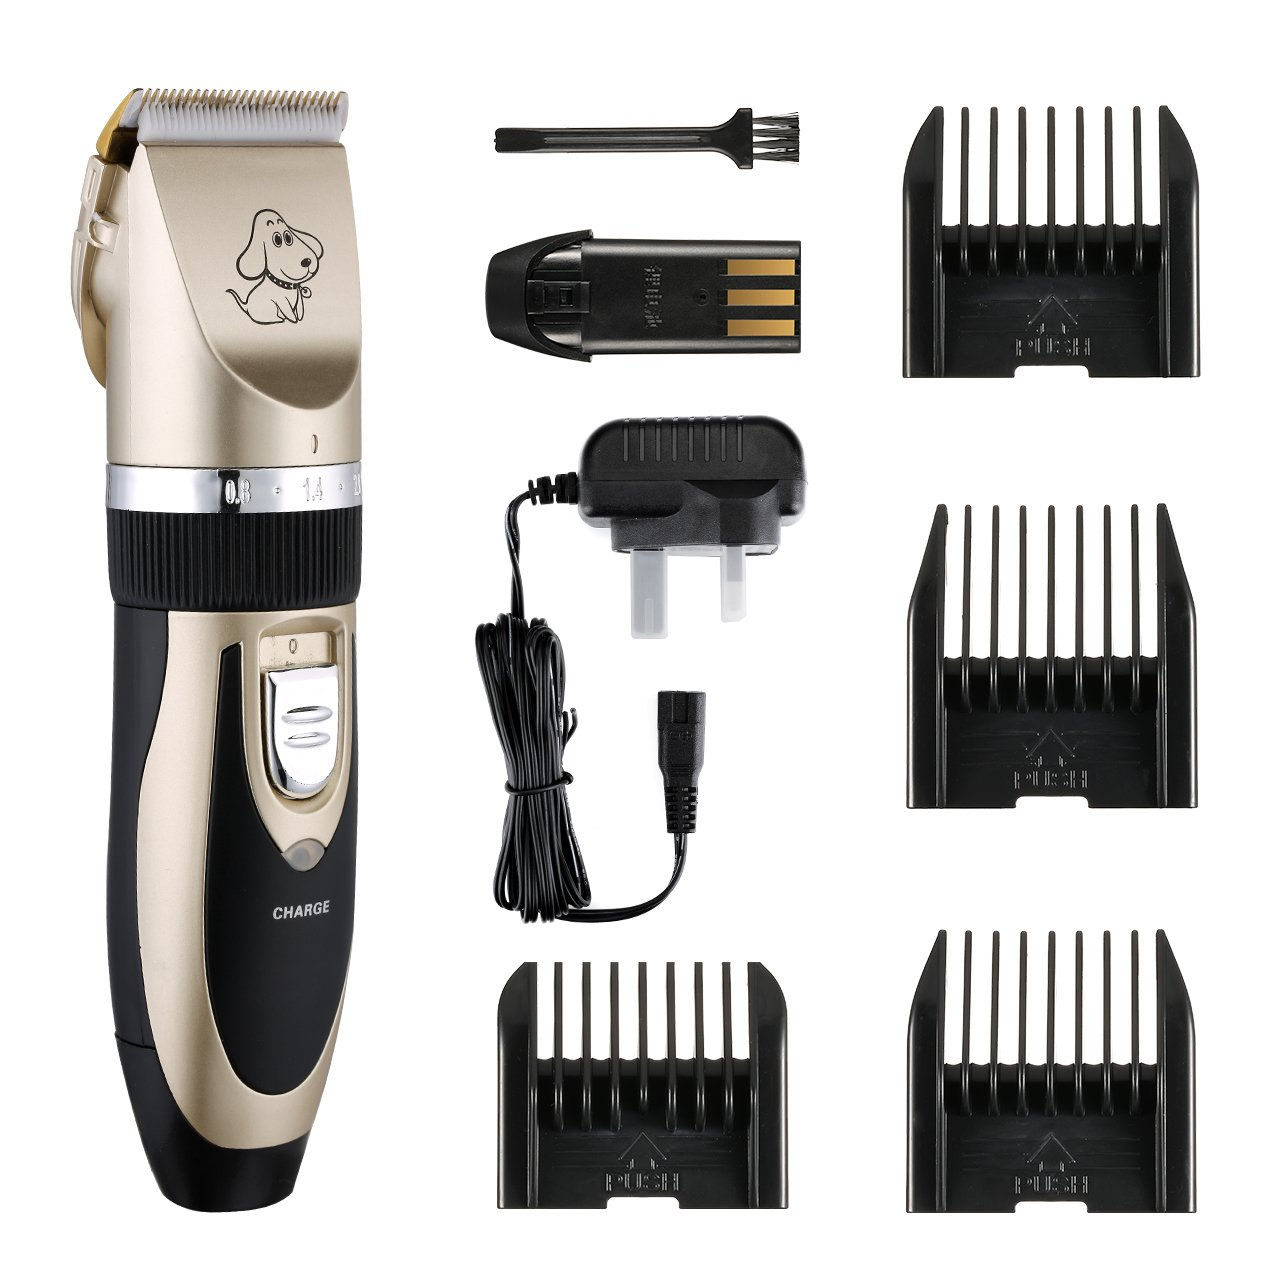 Pet Grooming Clippers TOPOP Lithium Battery Rechargeable Dog Clippers 4 Comb Guides Pet Clippers Cordless Pet Hair Shaver Low Noise Electric Clippers Grooming Trimmer Kit Set Low Vibration Cat Clippers with Cleaning Brush for Pet Dogs and Cats - Gold +Bla